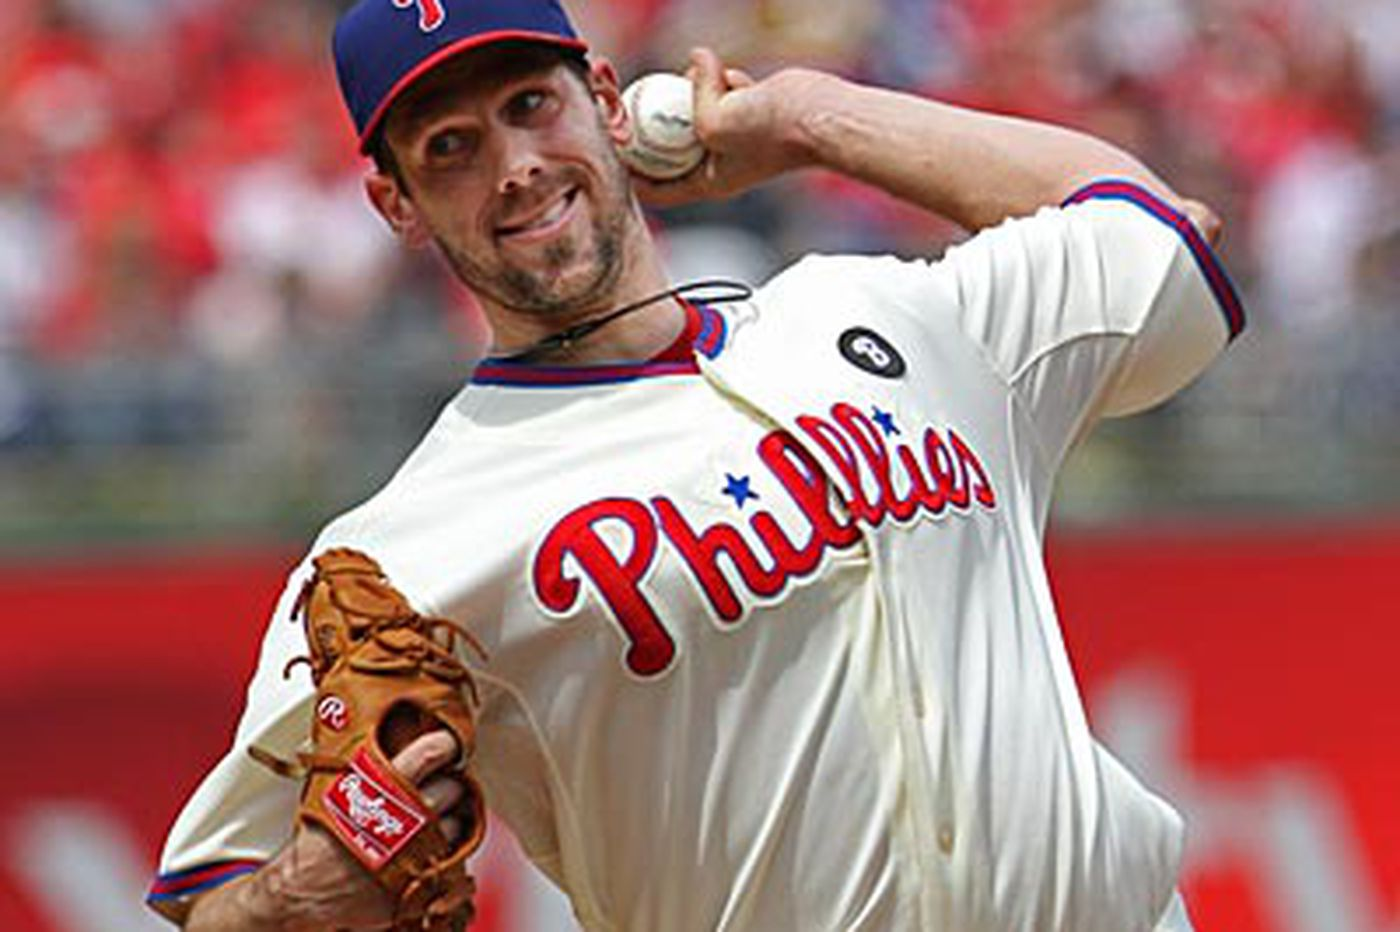 Cliff Lee facing Rangers is just baseball business as usual